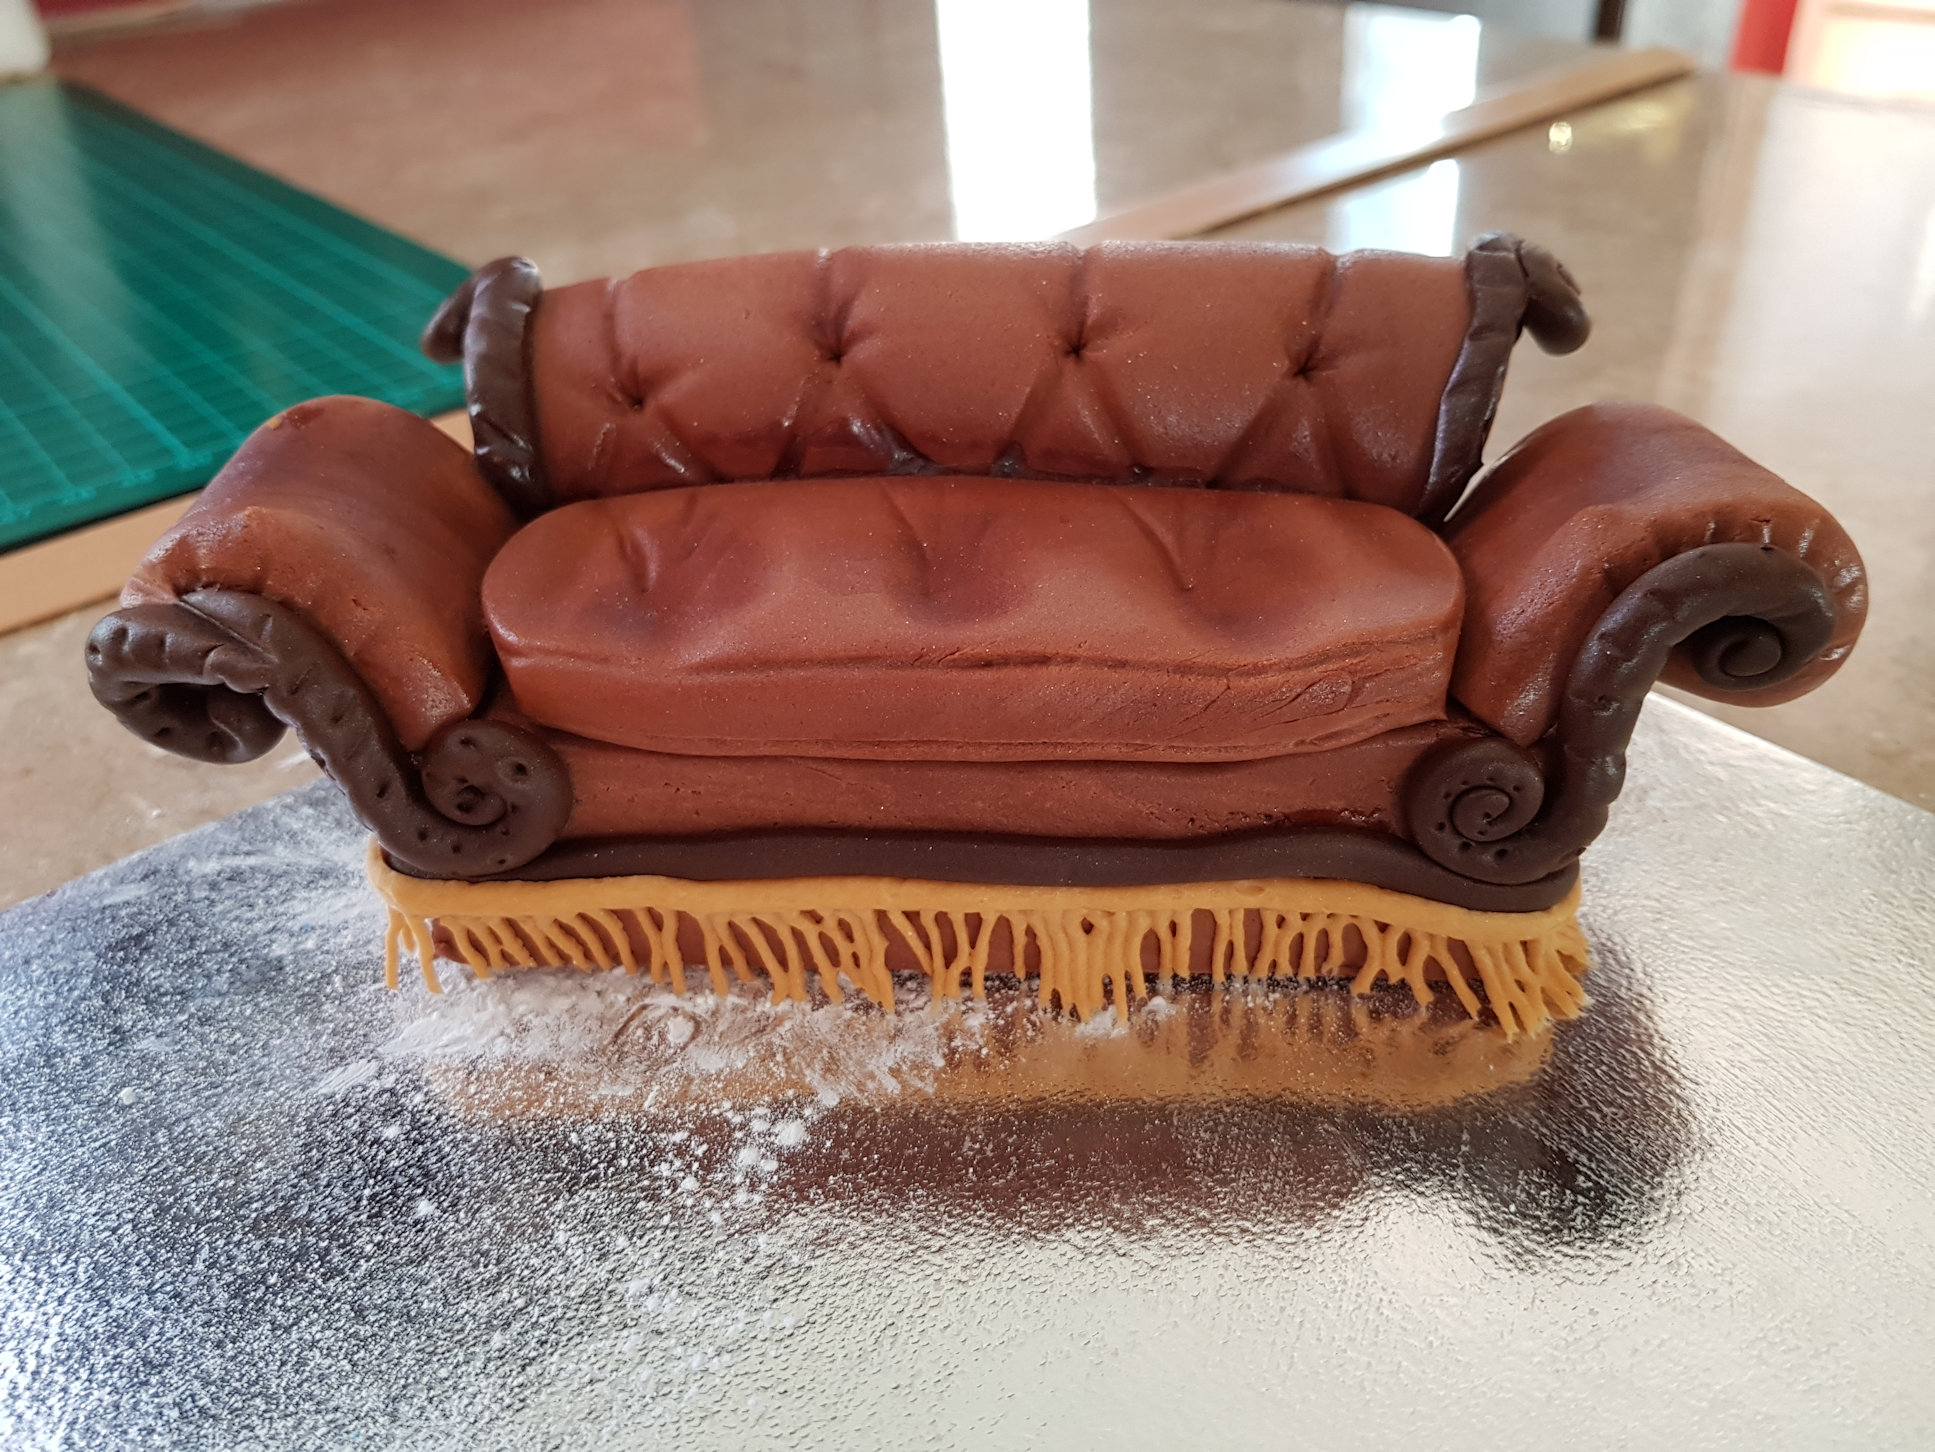 Sofa From Friends Tv Show Cake Topper